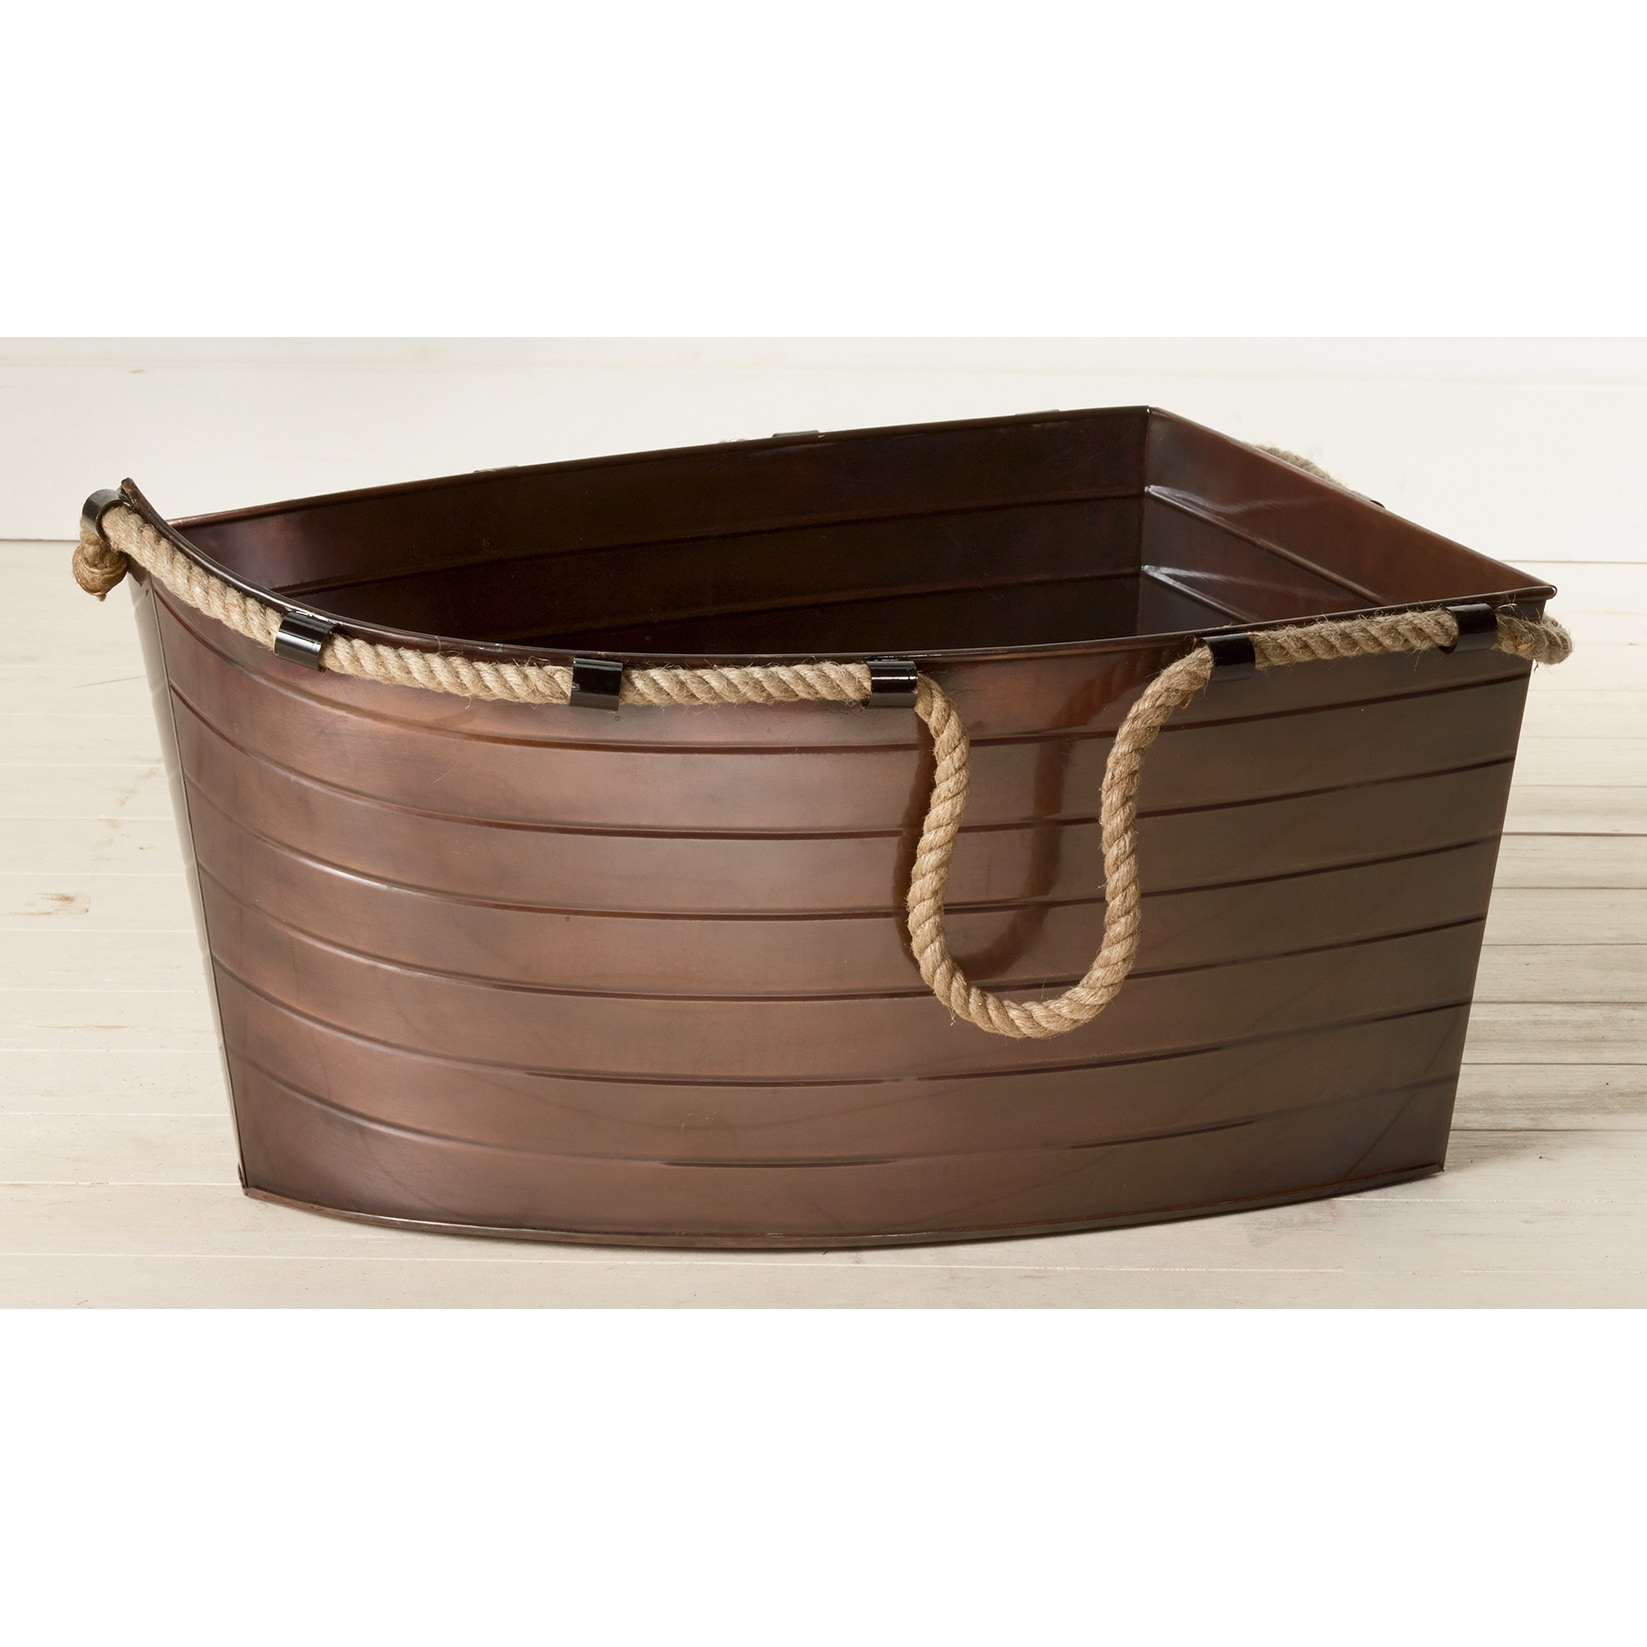 KINDWER Antique Copper Boat Tub with Hemp Handles, Brown ...